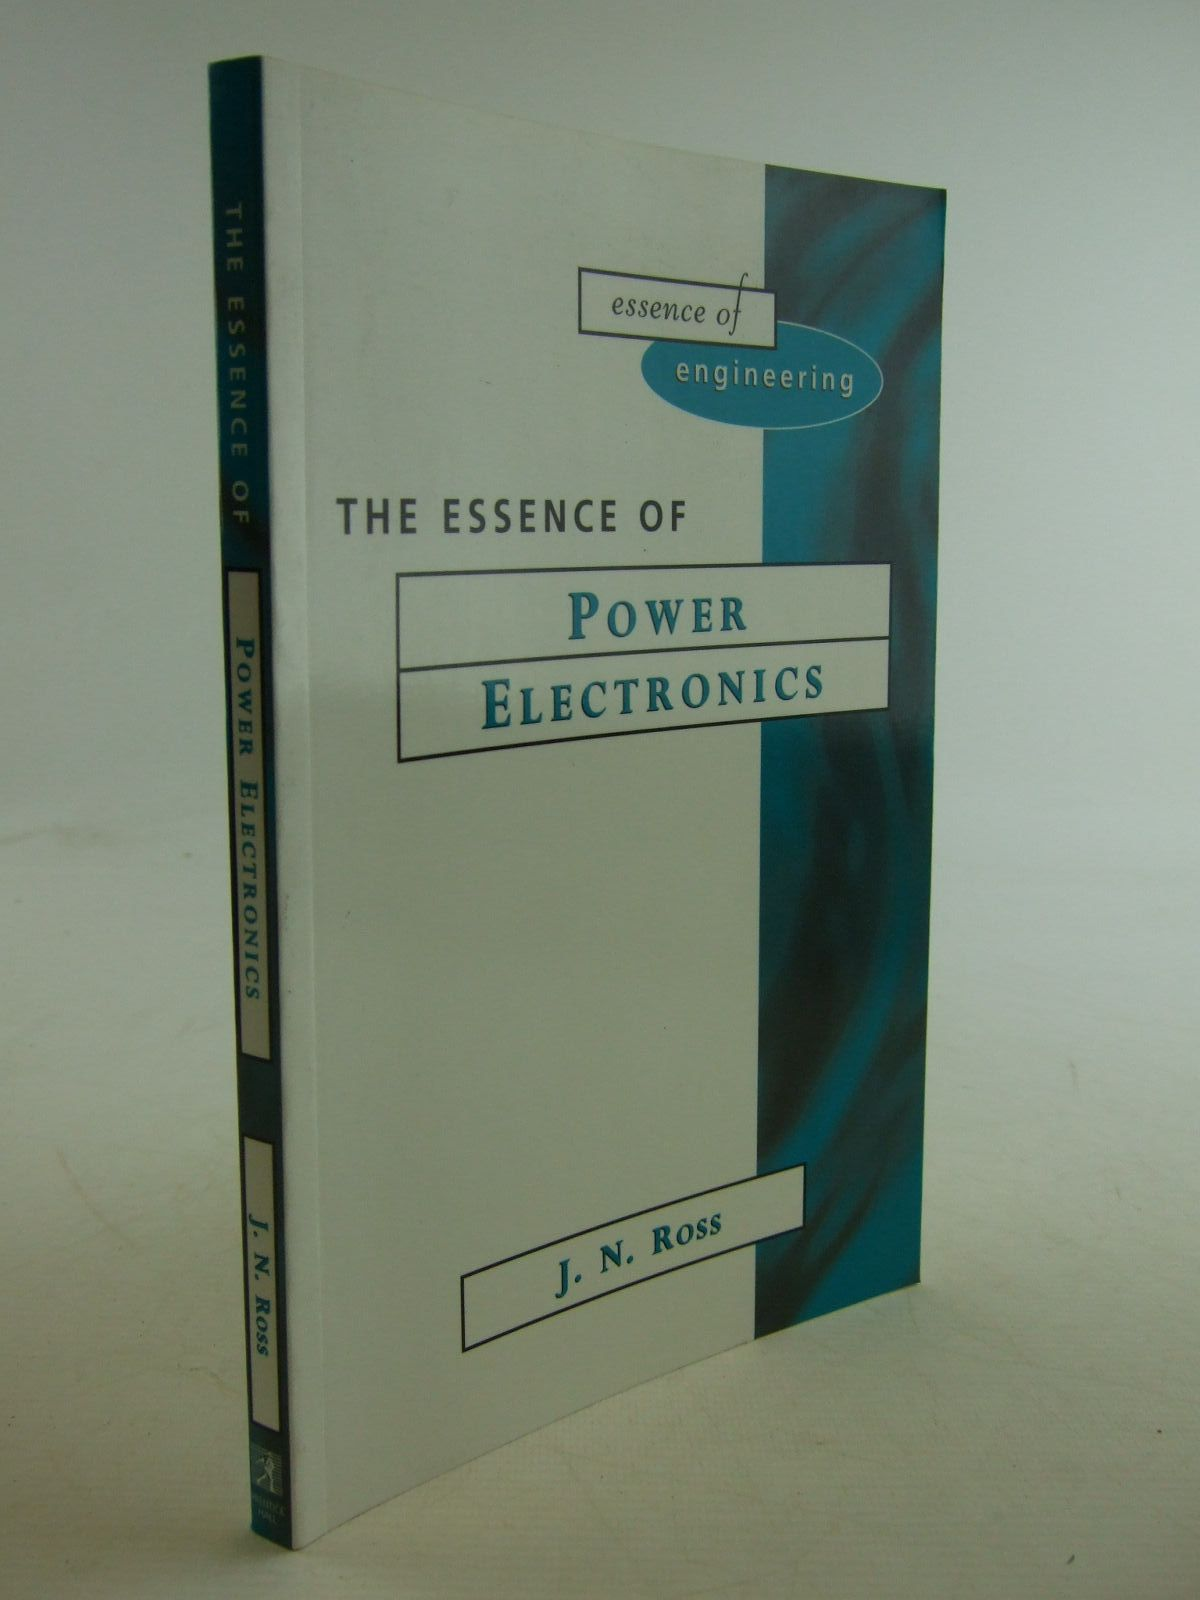 Photo of THE ESSENCE OF POWER ELECTRONICS written by Ross, J.N. published by Prentice-Hall (STOCK CODE: 1206678)  for sale by Stella & Rose's Books